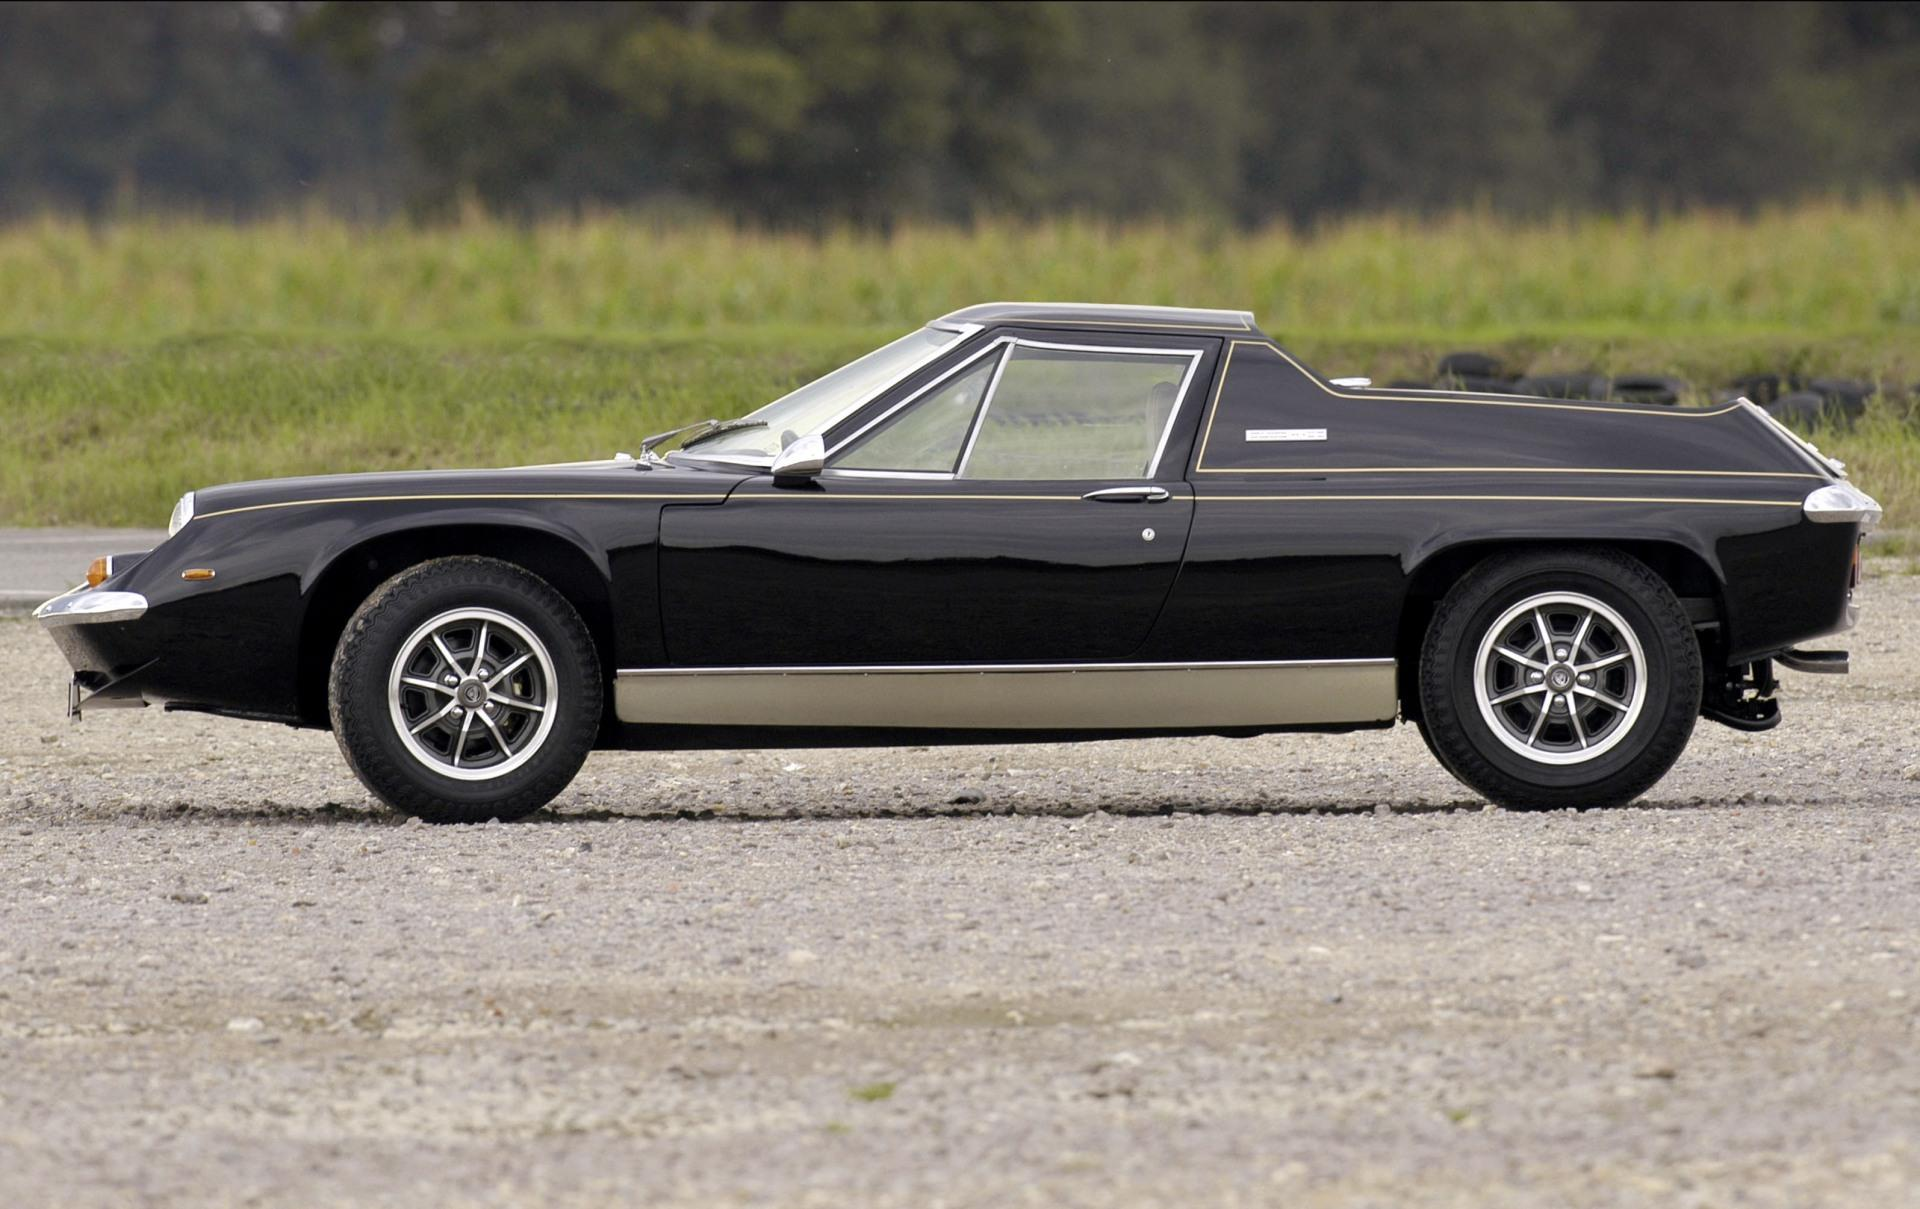 1974 Lotus Europa JPS Images. Photo: Lotus-